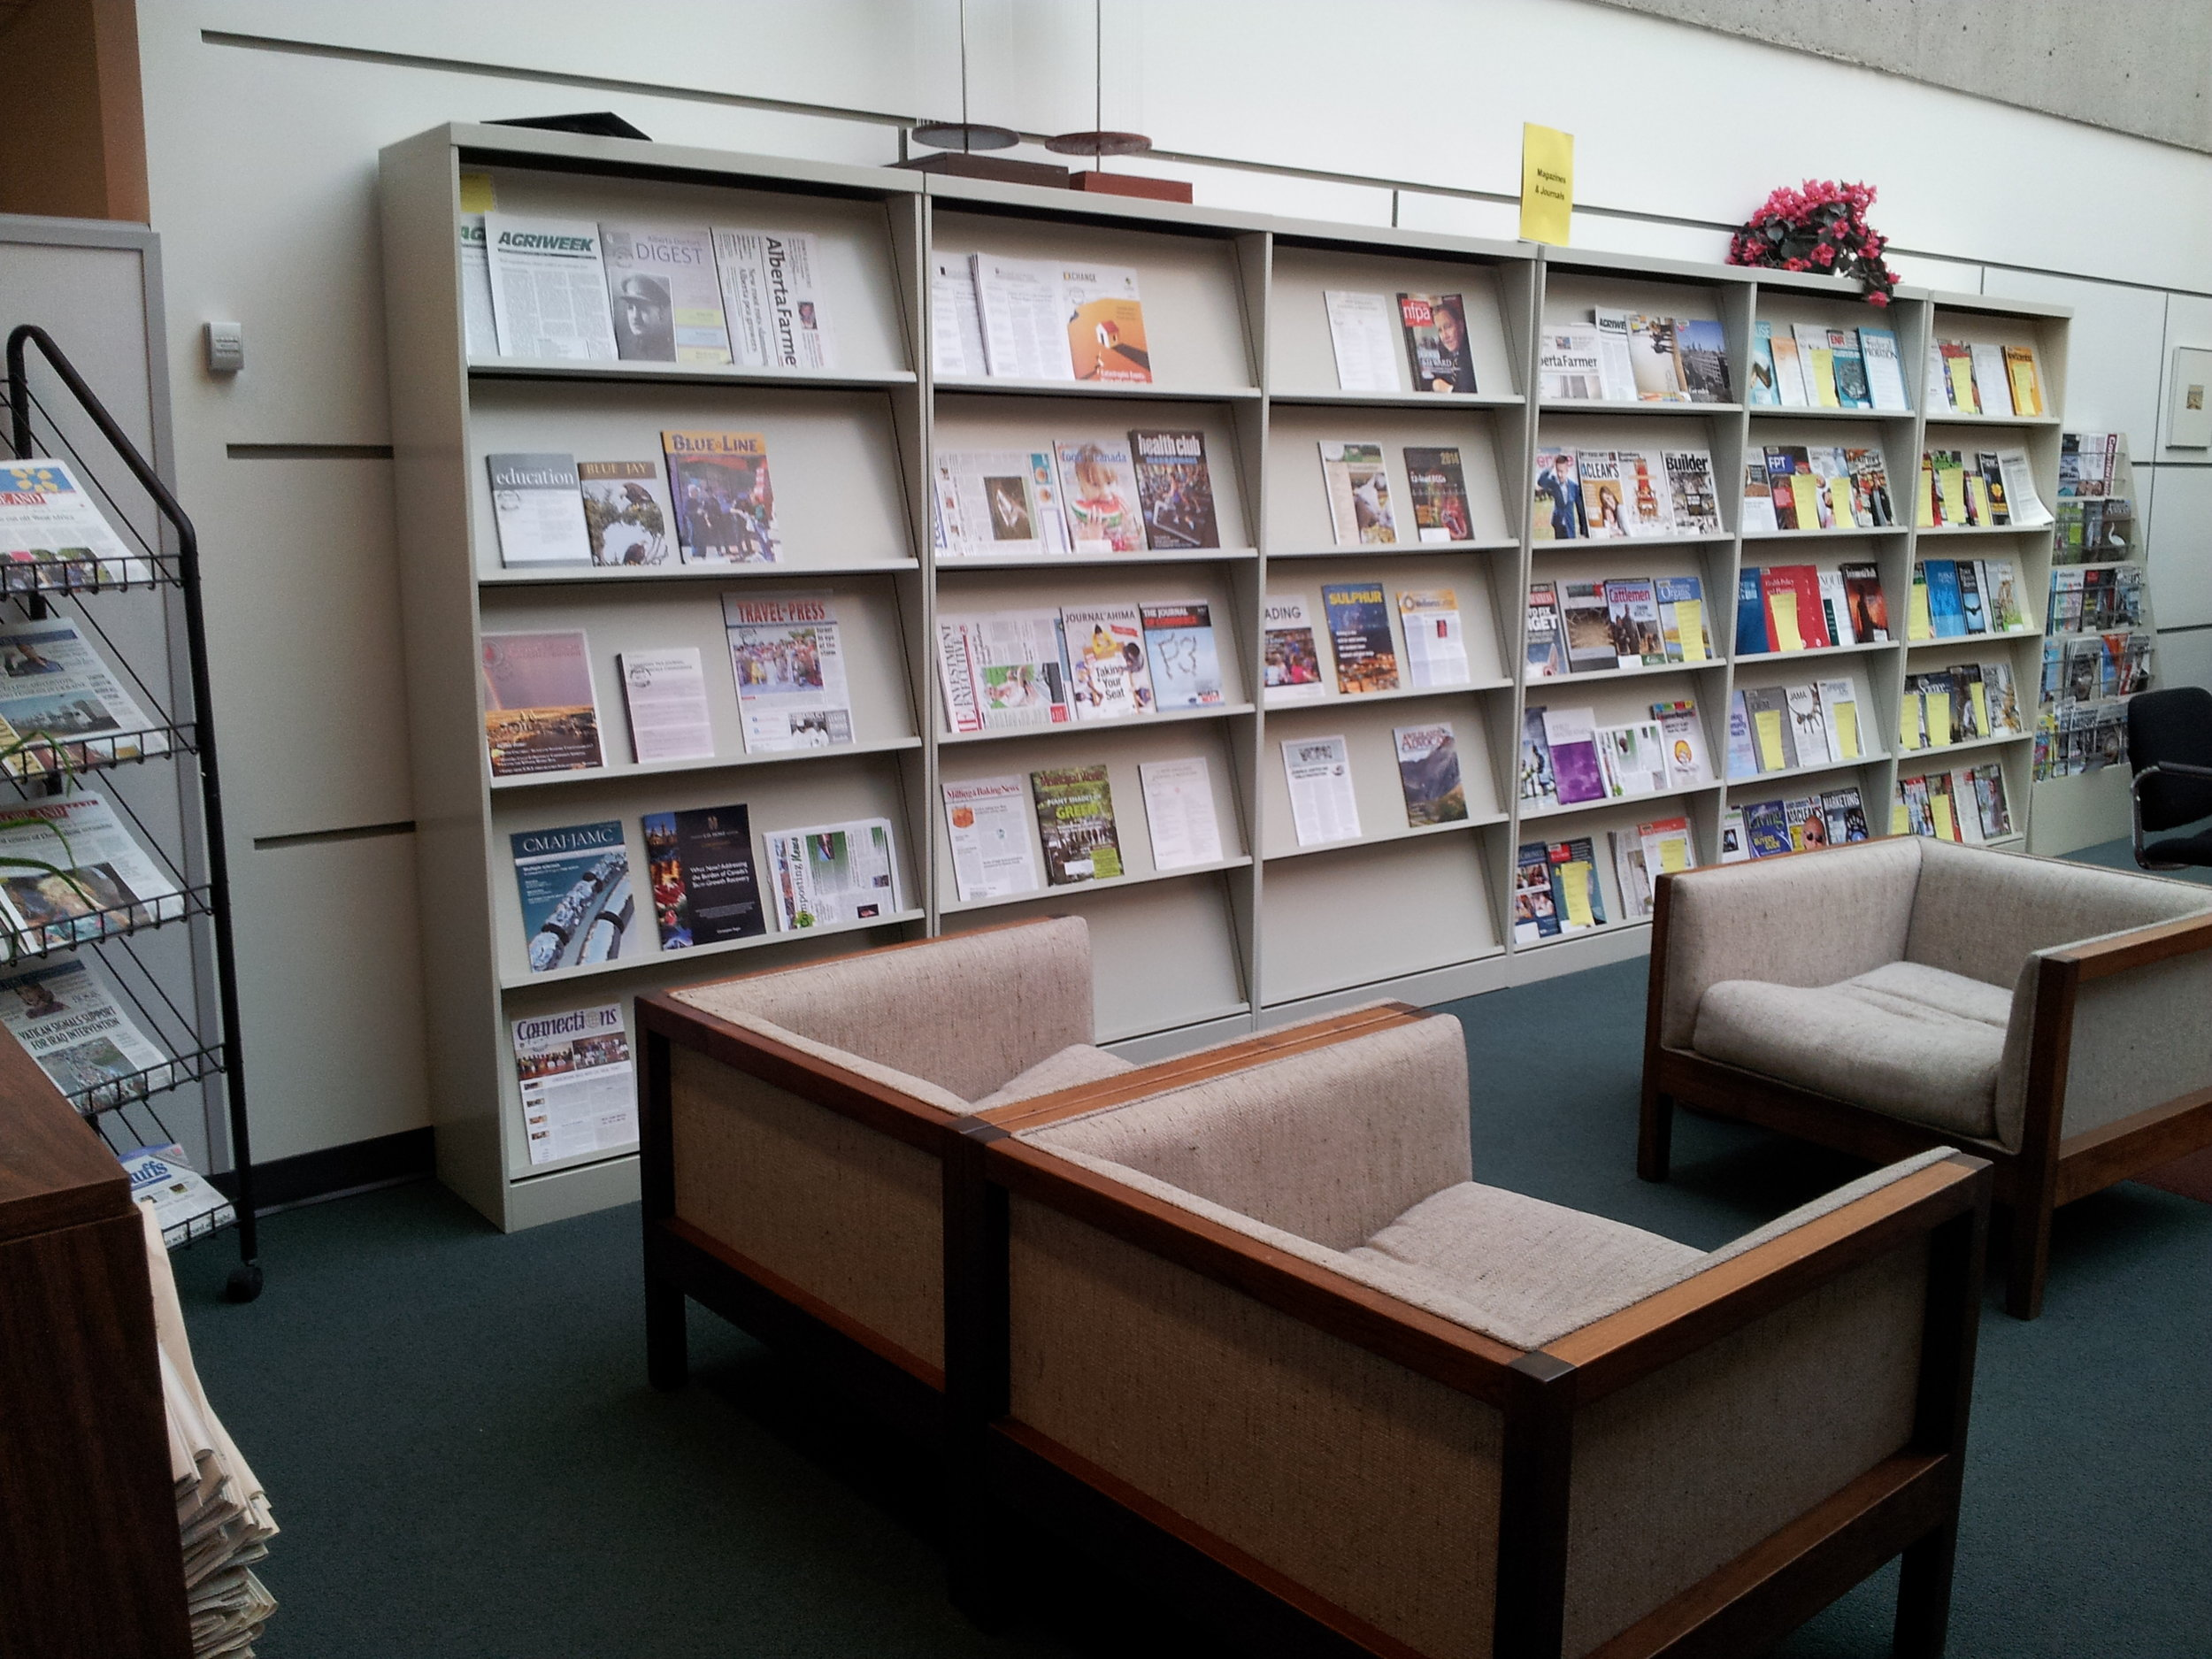 The periodicals and lounge area. Jane said people come here to read their newspapers while having lunch, but also naps.